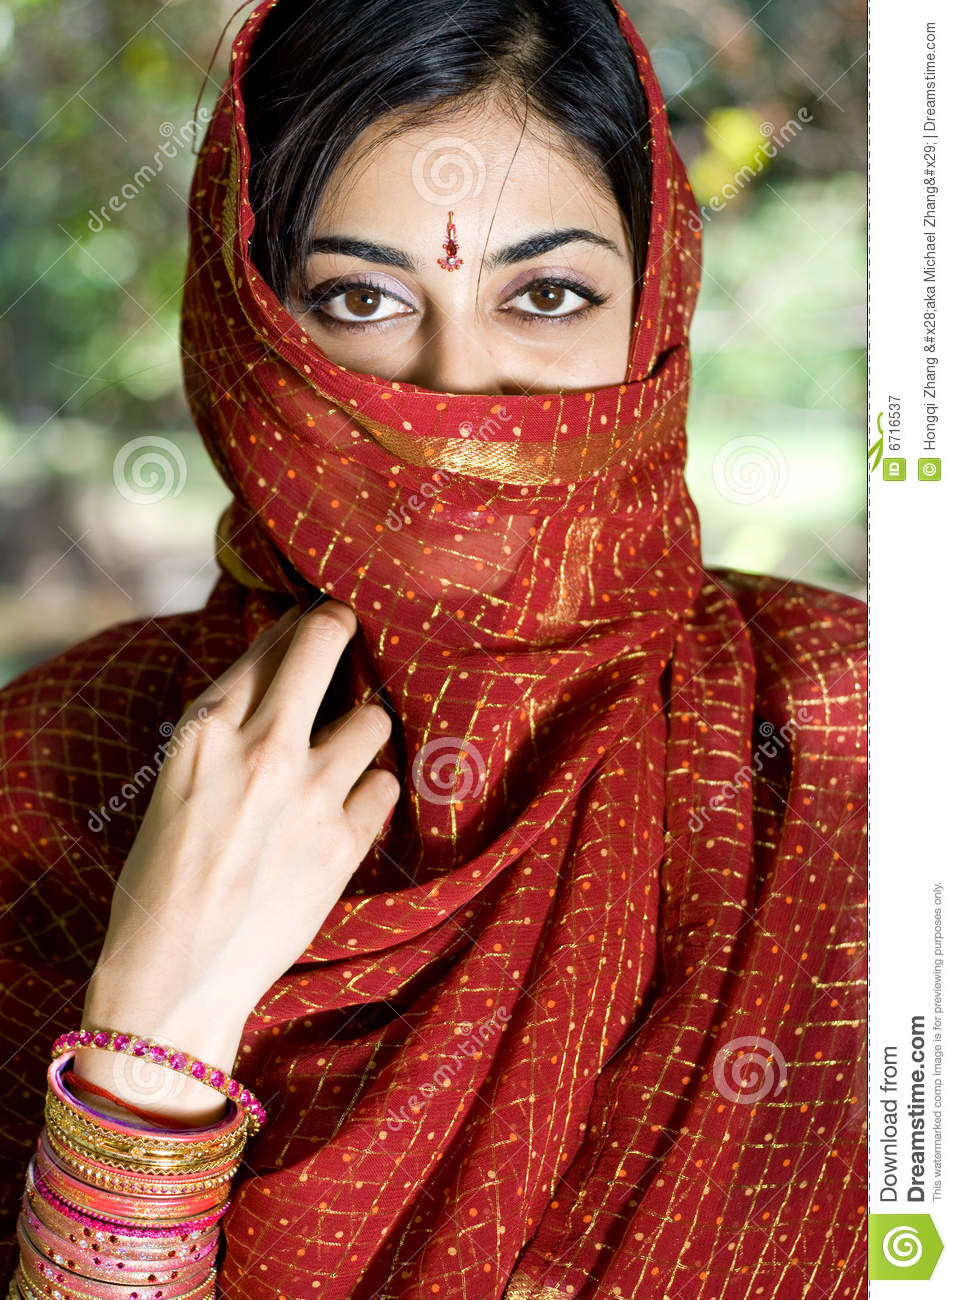 Http Www Dreamstime Com Royalty Free Stock Photography Indian Woman Image6716537